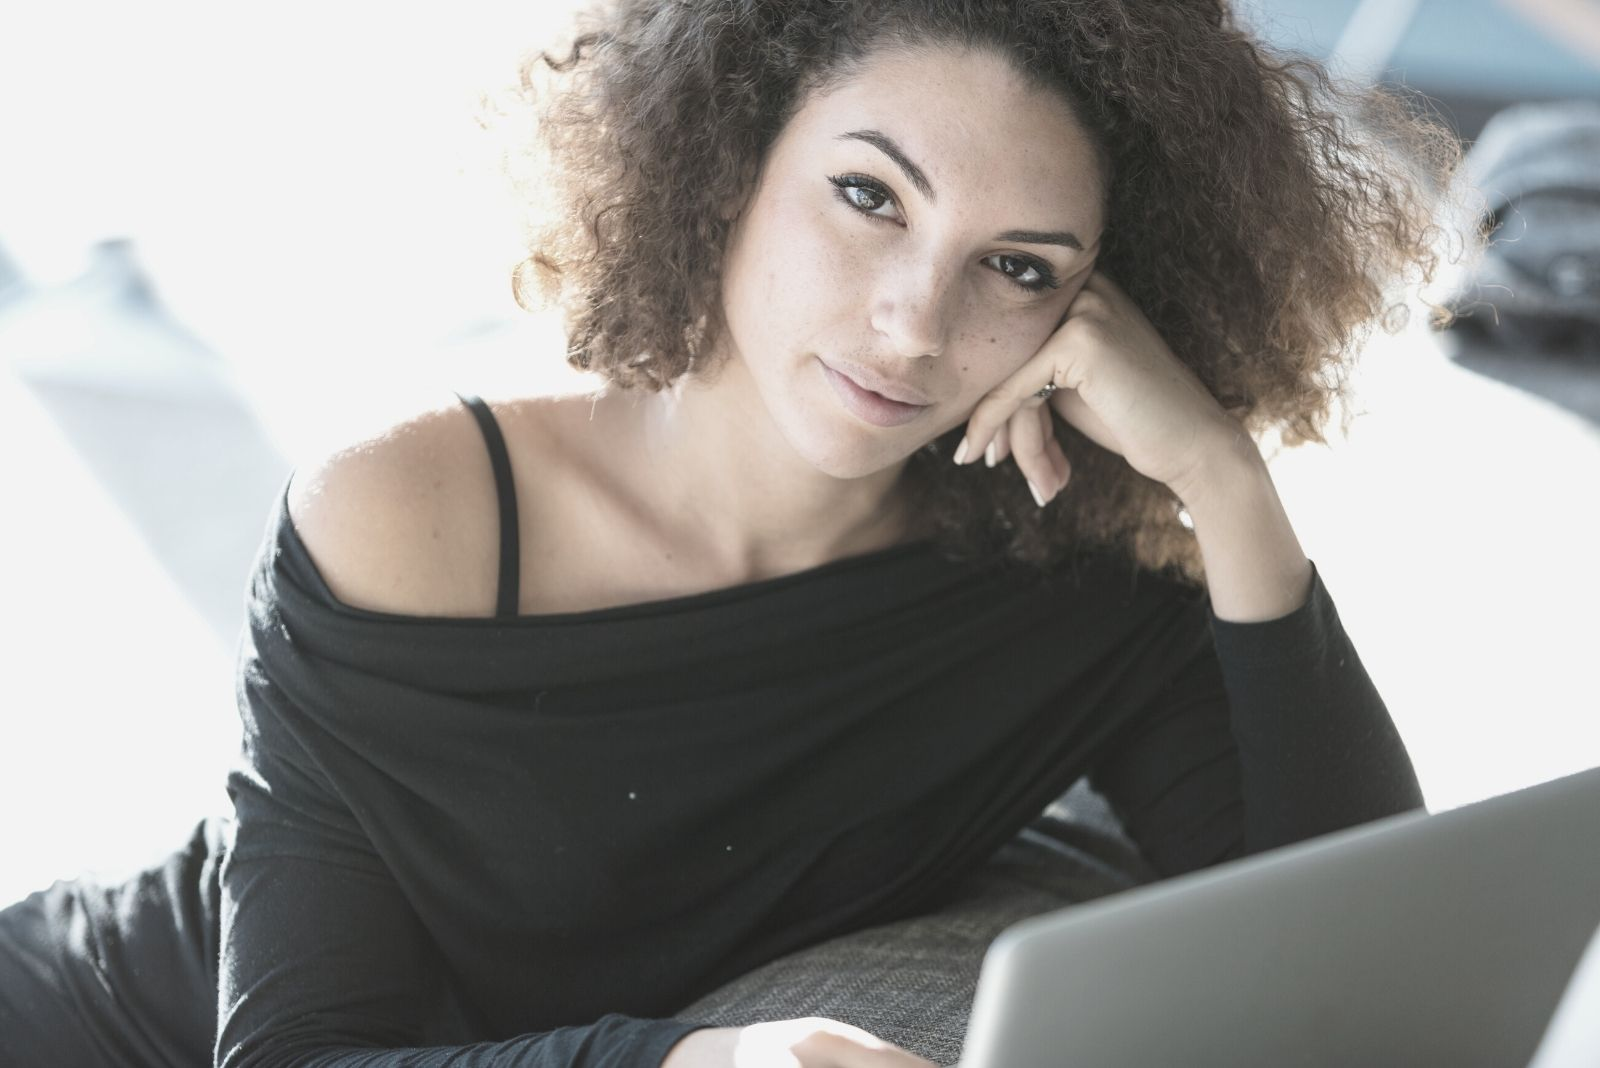 pretty curly haired woman lounging while working on laptop looking at the camera